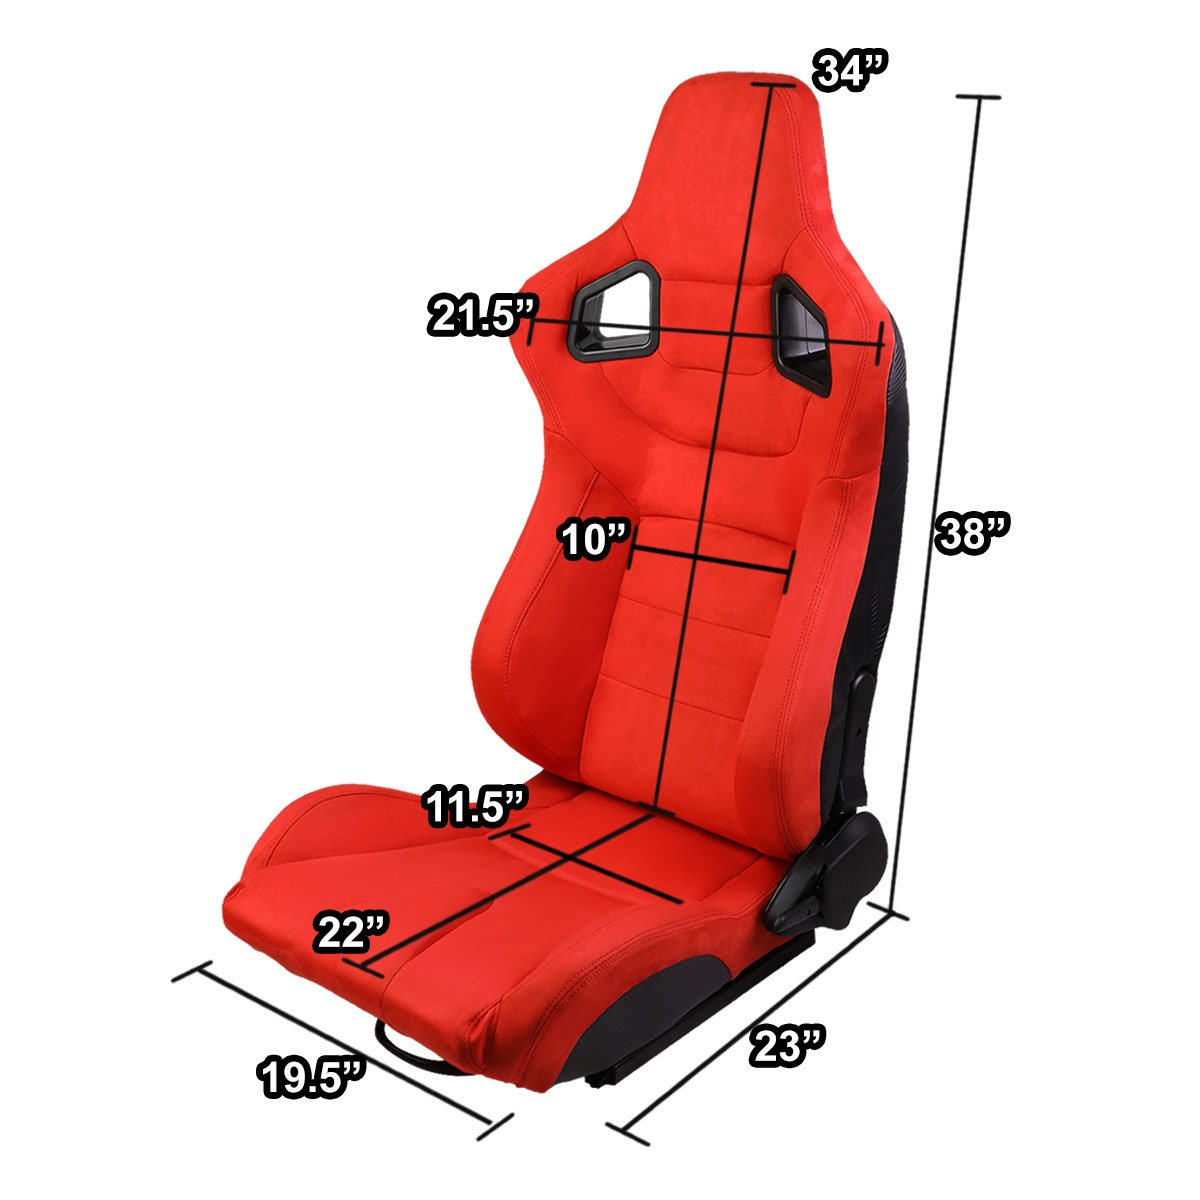 Set of 2 Universal Carbon Fiber Pattern Type-R Suede Reclinable Racing Seats w//Sliders Red